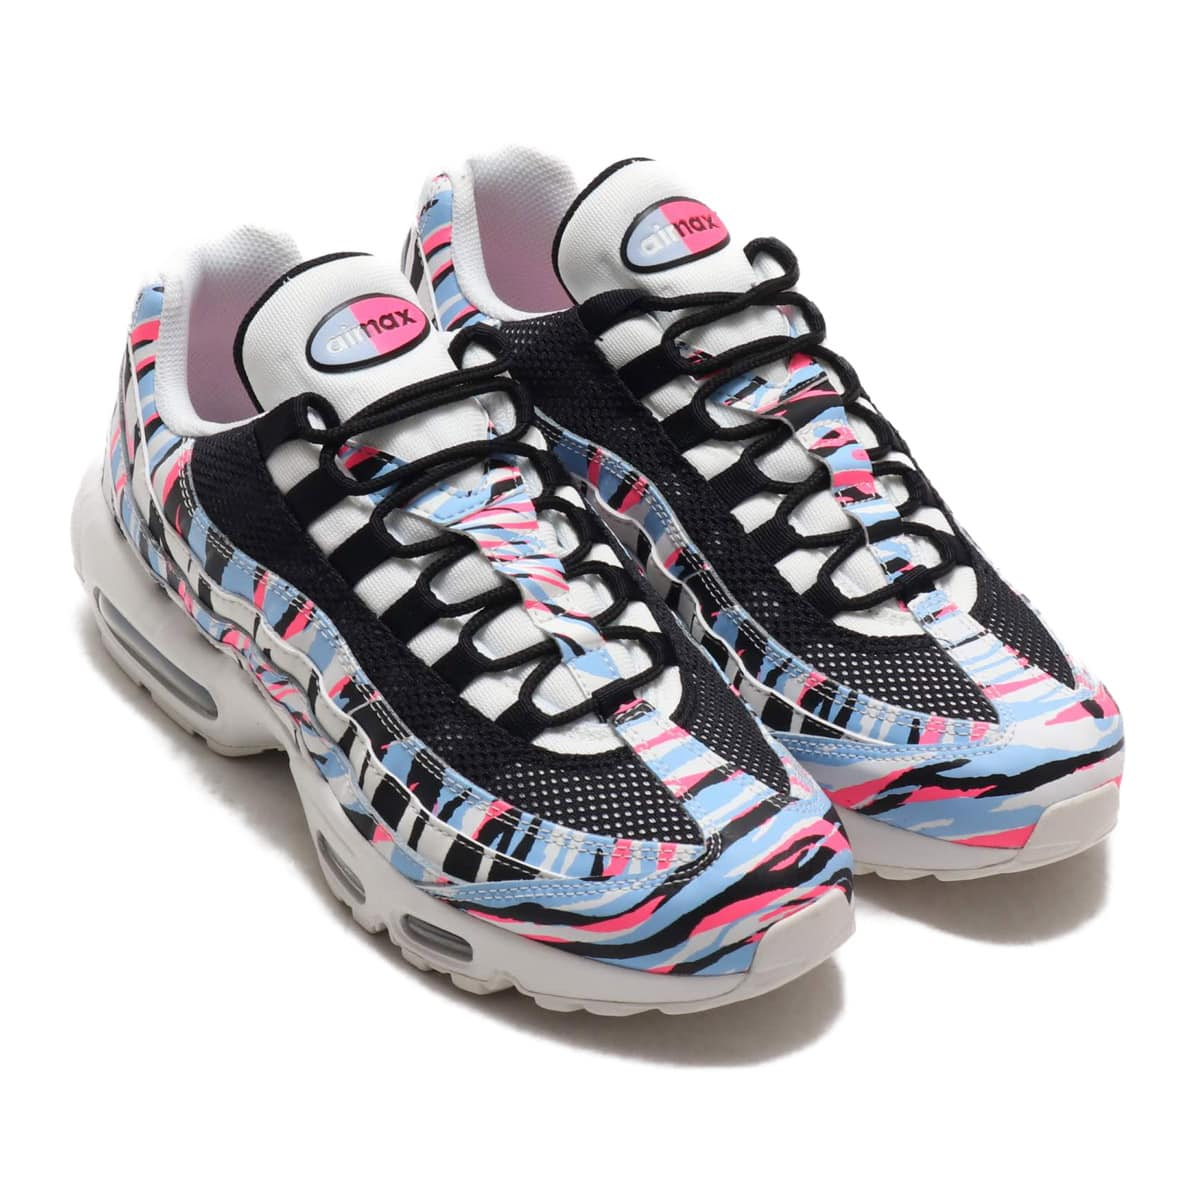 NIKE AIR MAX 95 CTRY SUMMIT WHITE/BLACK-ROYAL TINT-RACER PINK 20SU-S_photo_large